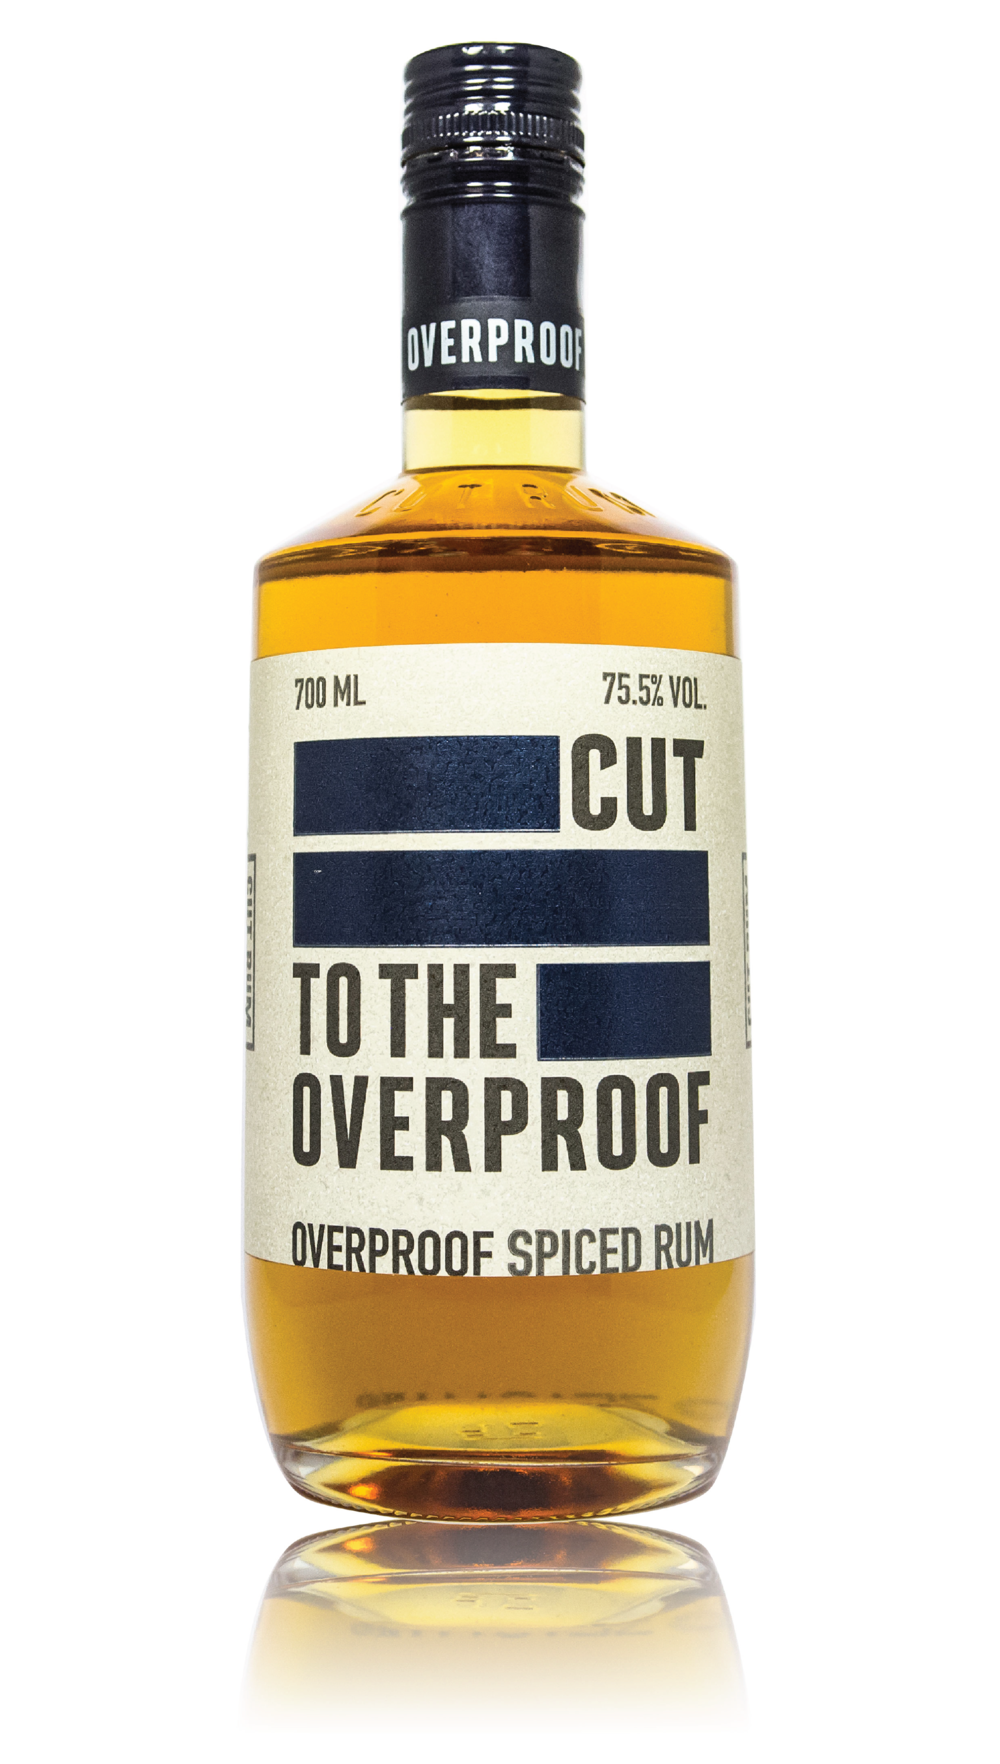 CUT overproof rum -small- reflection-01-01-01.png